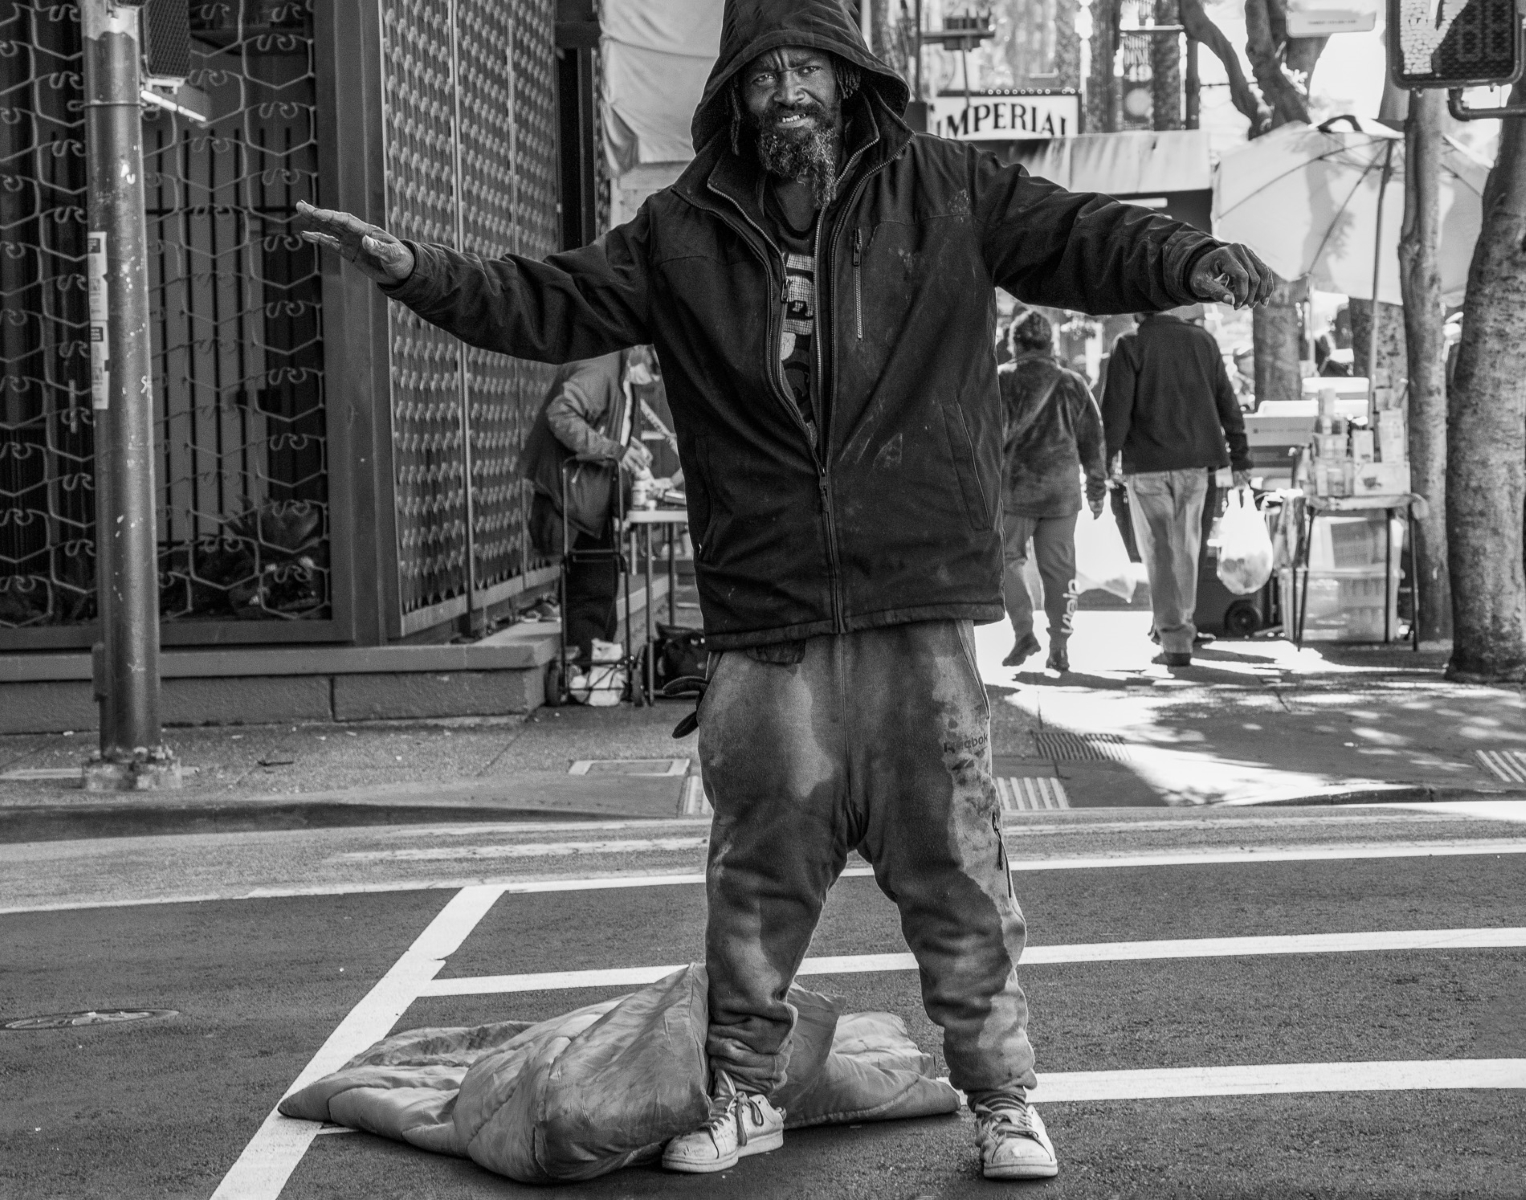 Homeless-Man-in-the-Crosswalk-MB-1-Place-by-Kenneth-Mark-BK